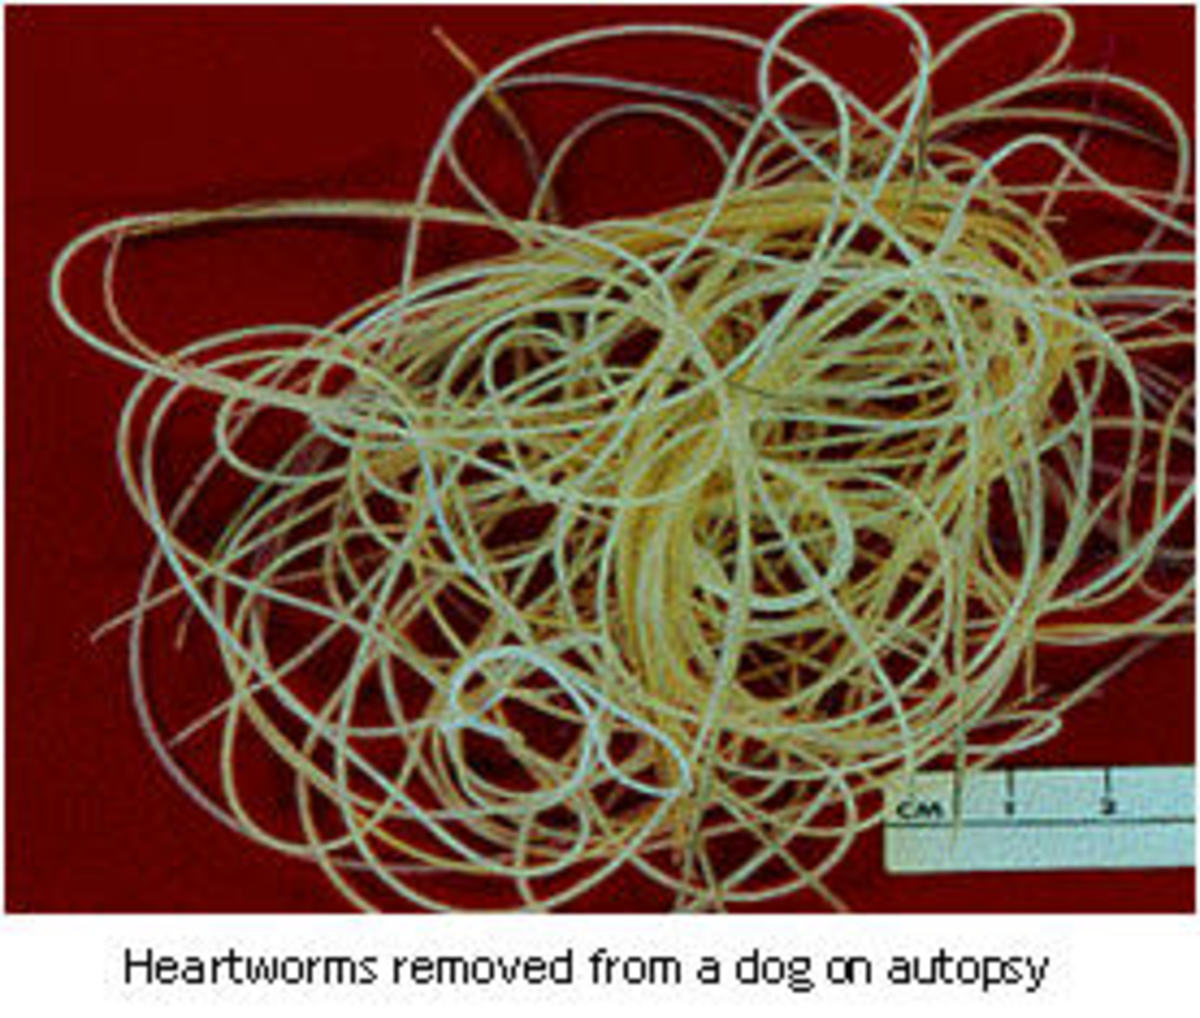 This is what heartworms look like